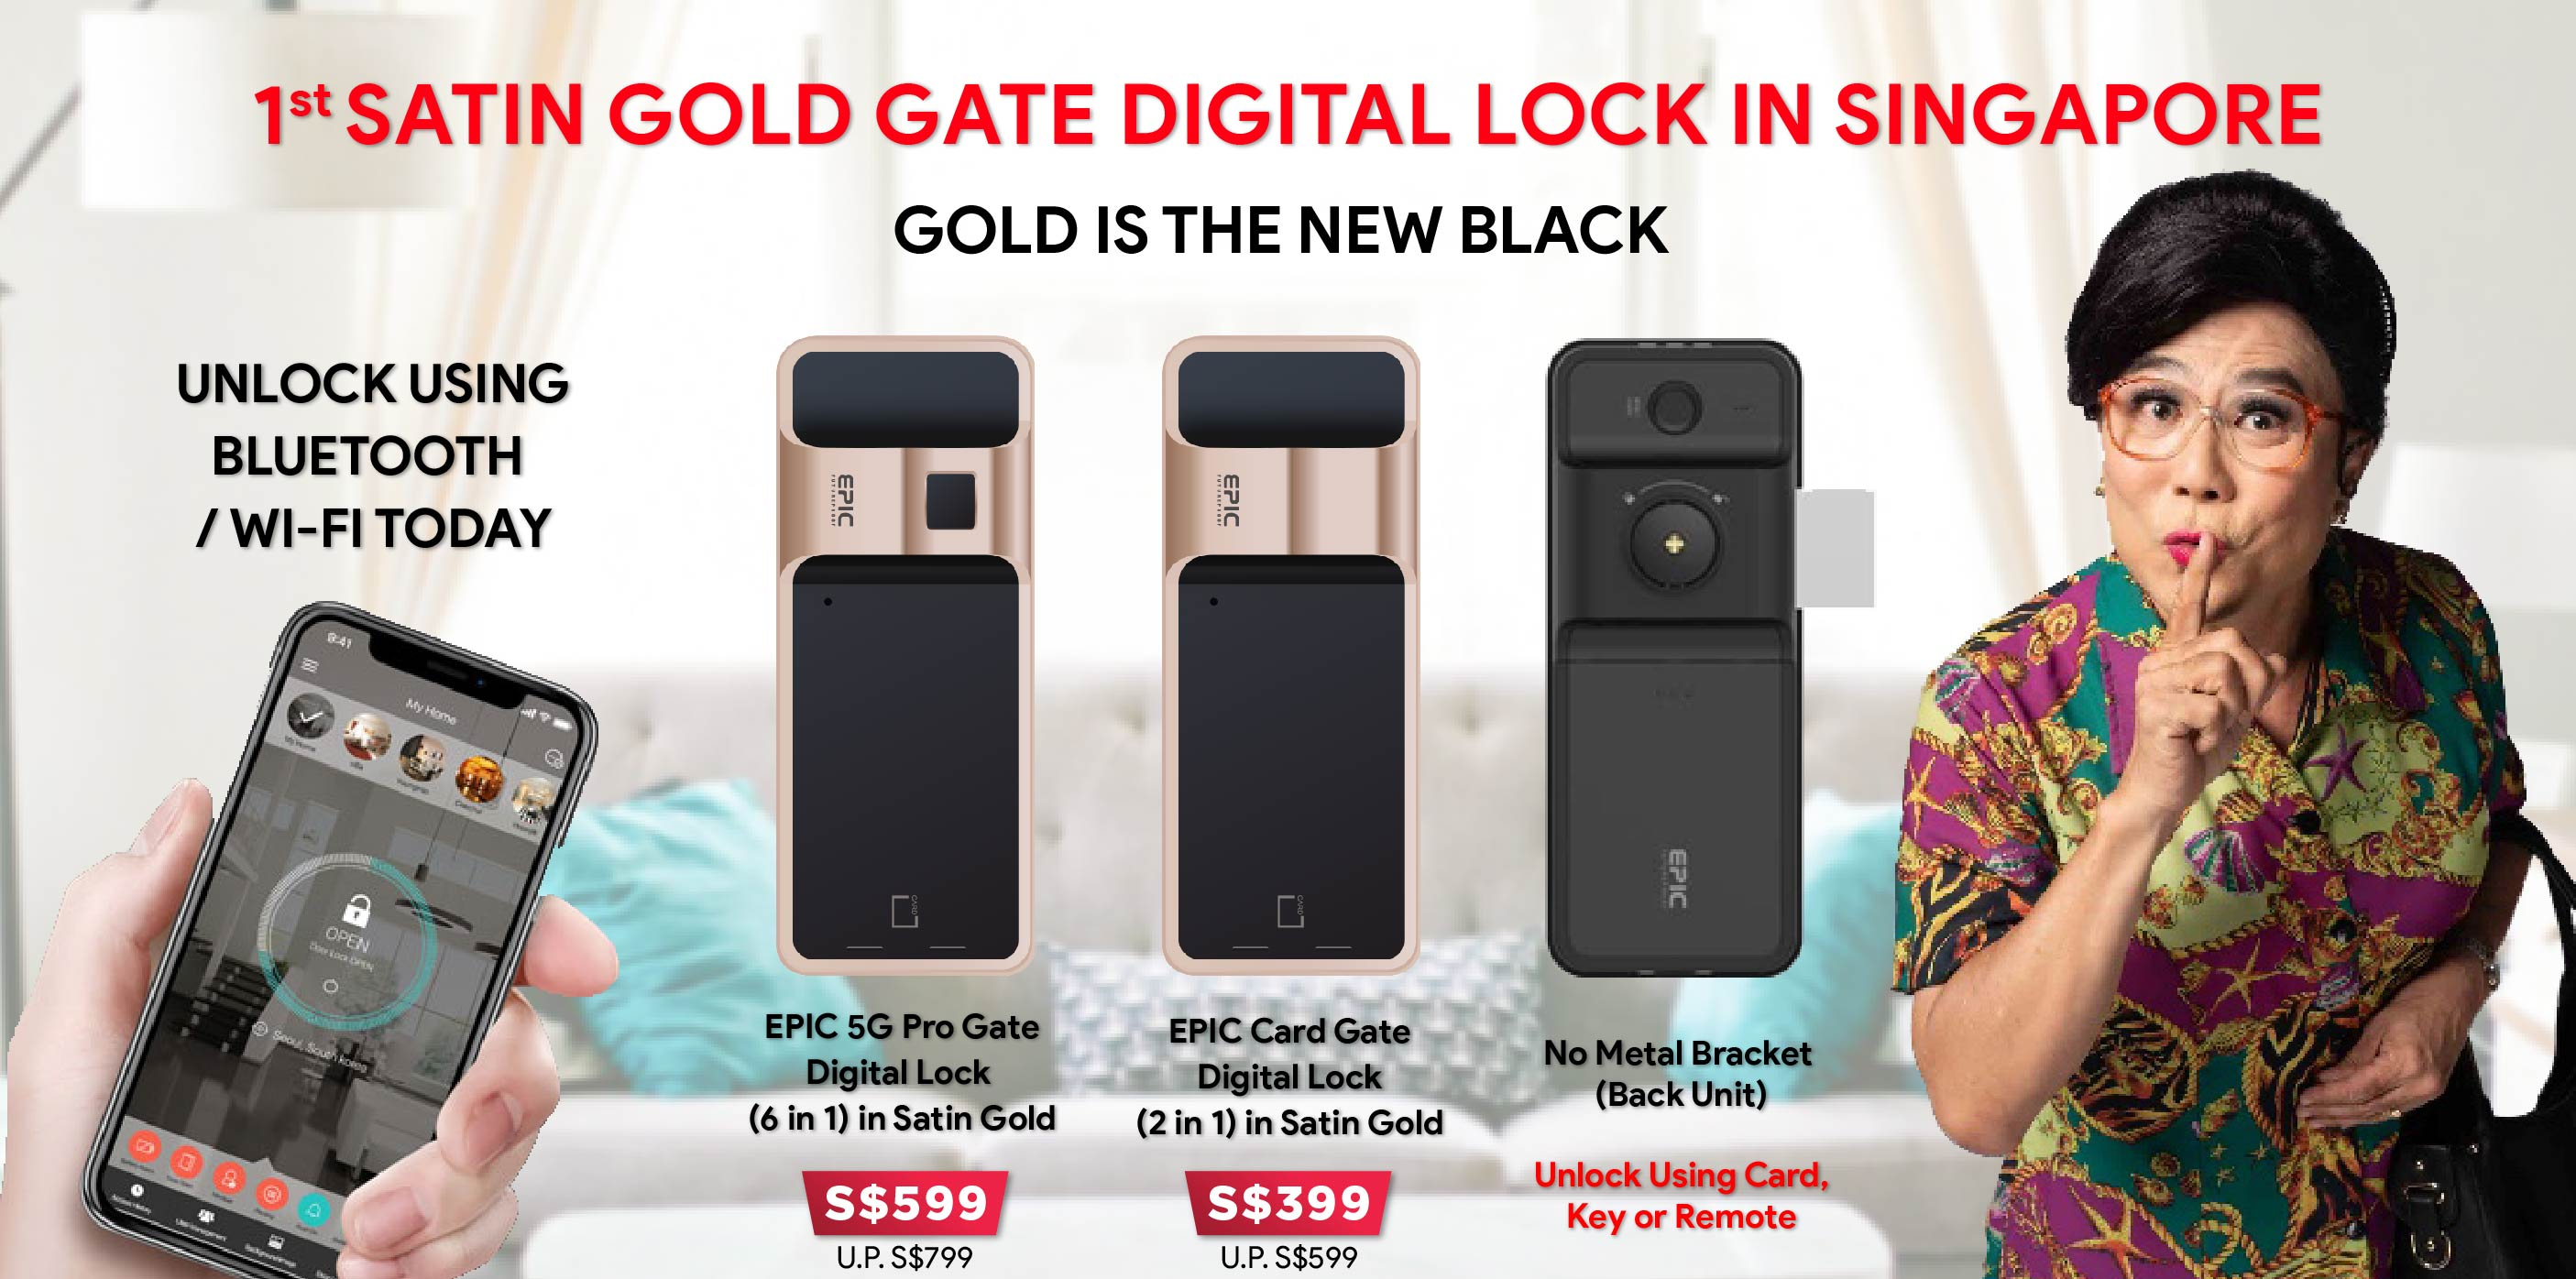 Satin Gold Gate Digital Lock